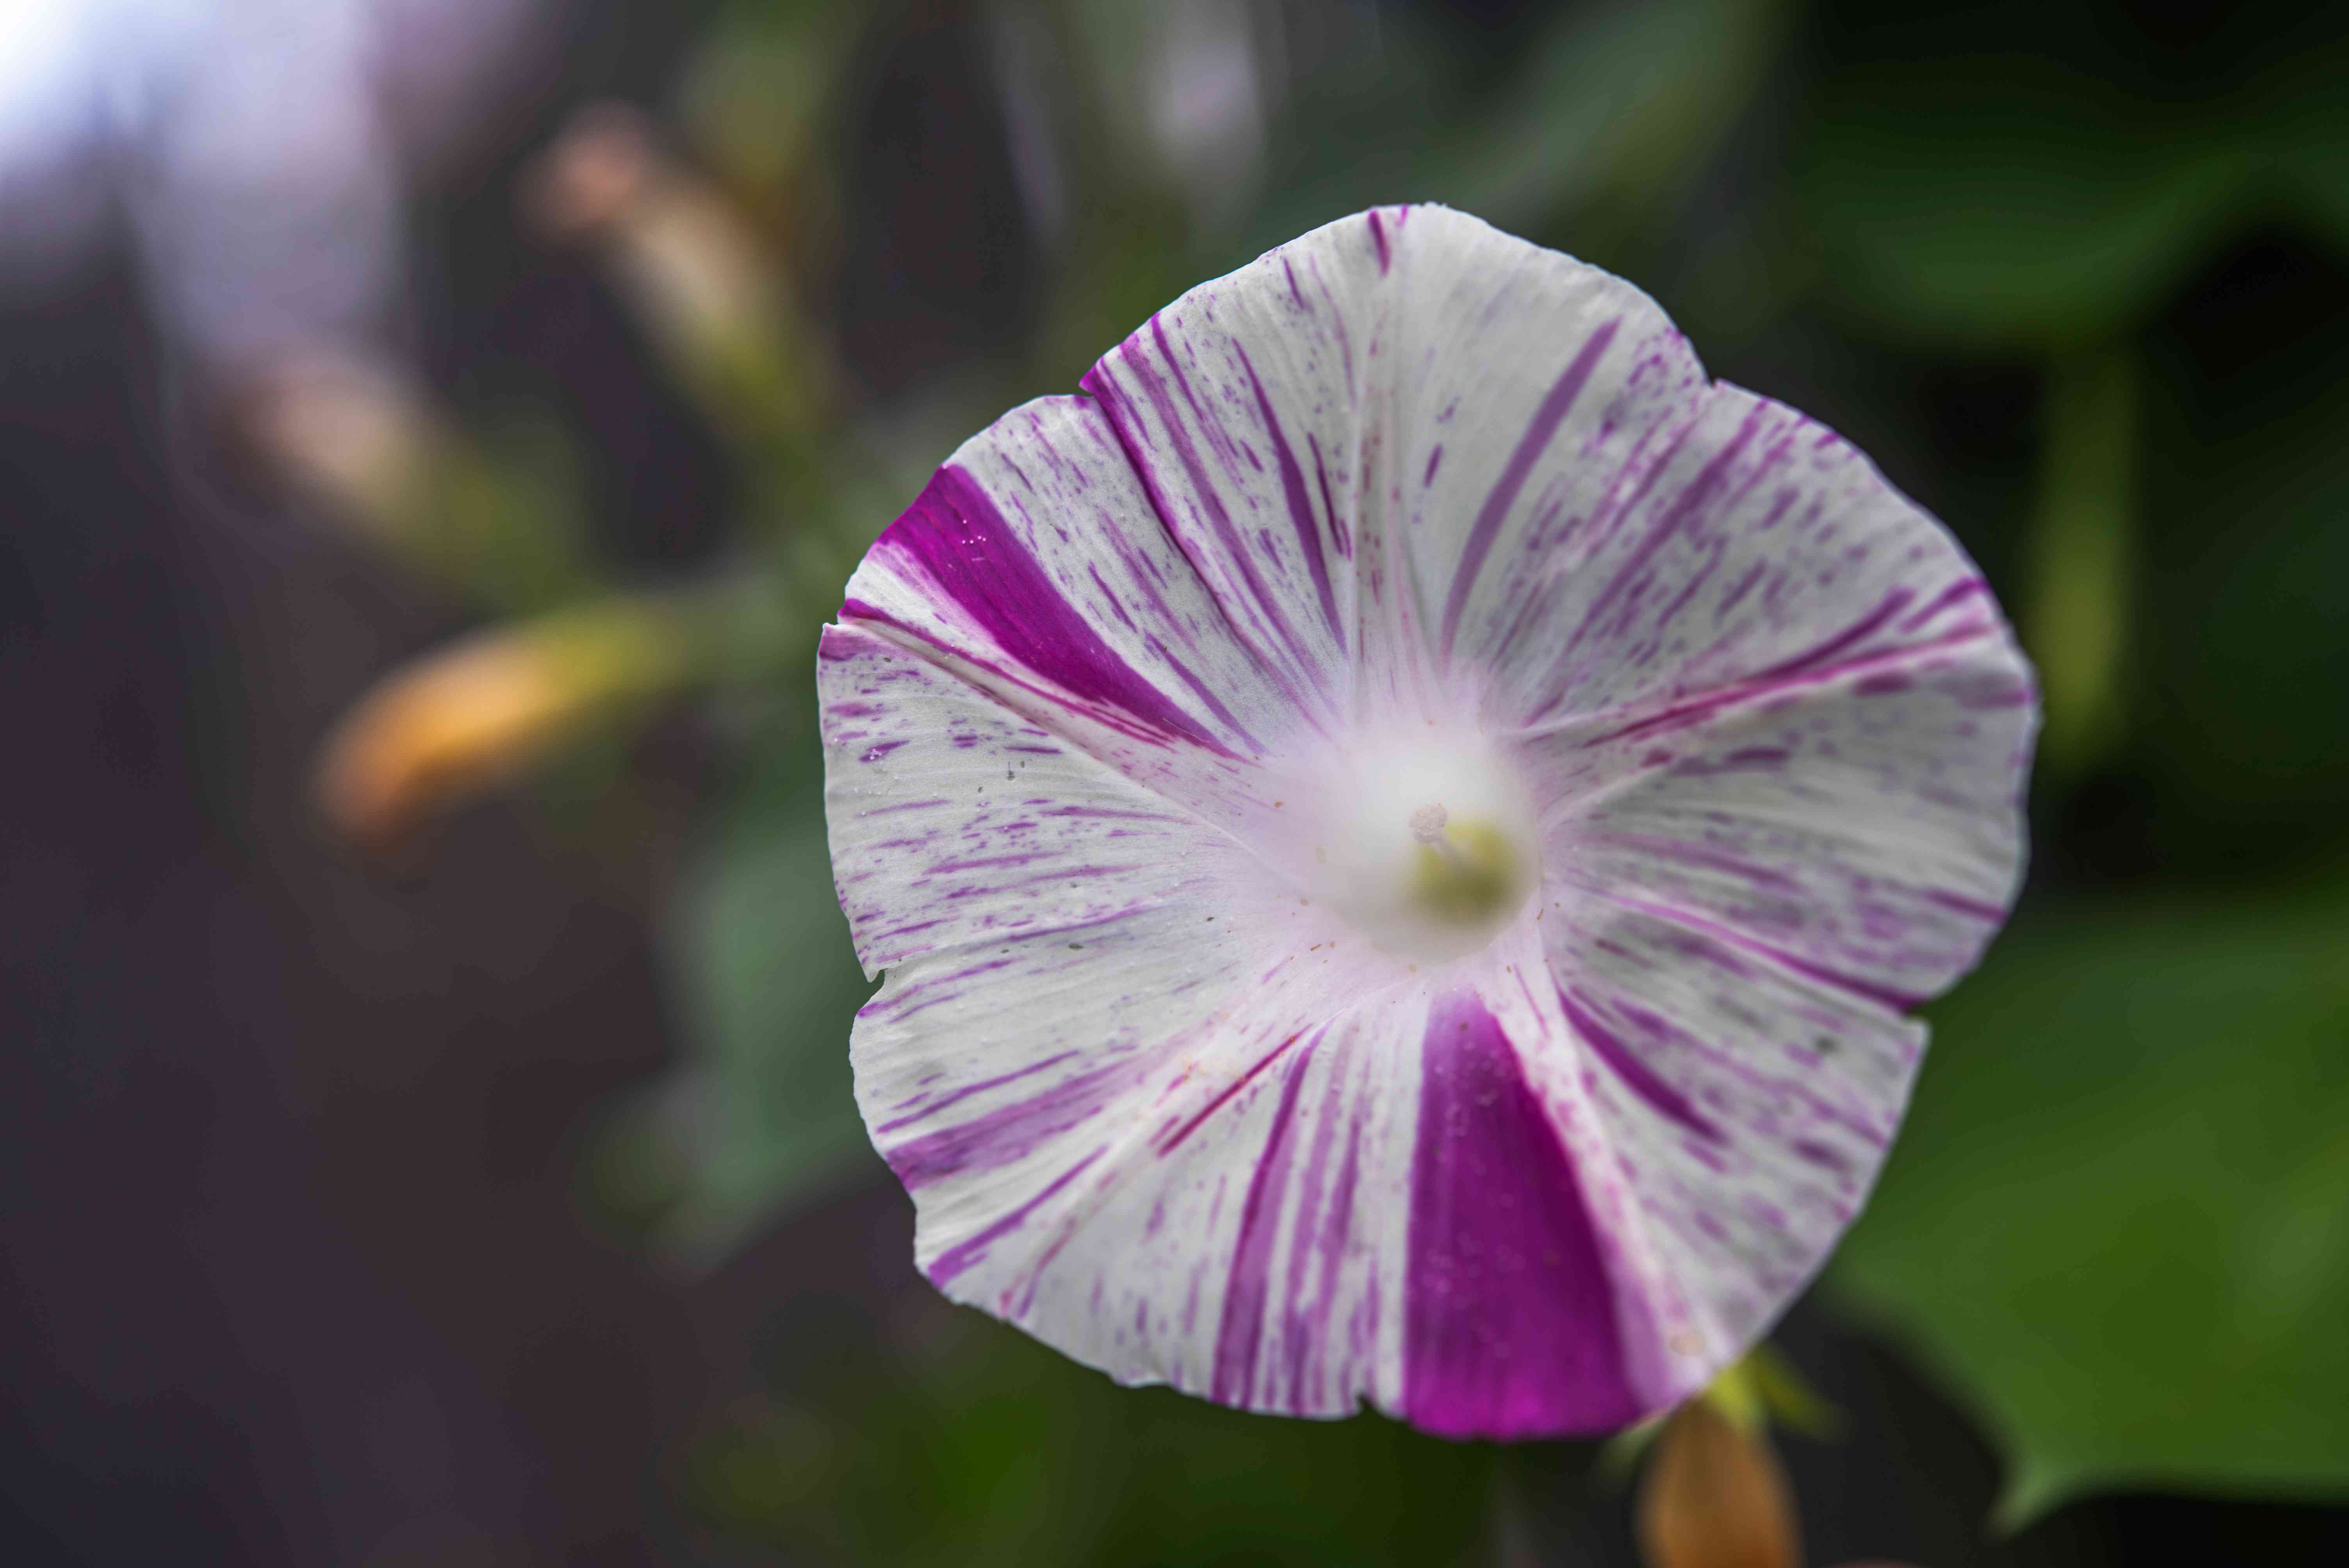 Morning glory with white and violet striped flower closeup